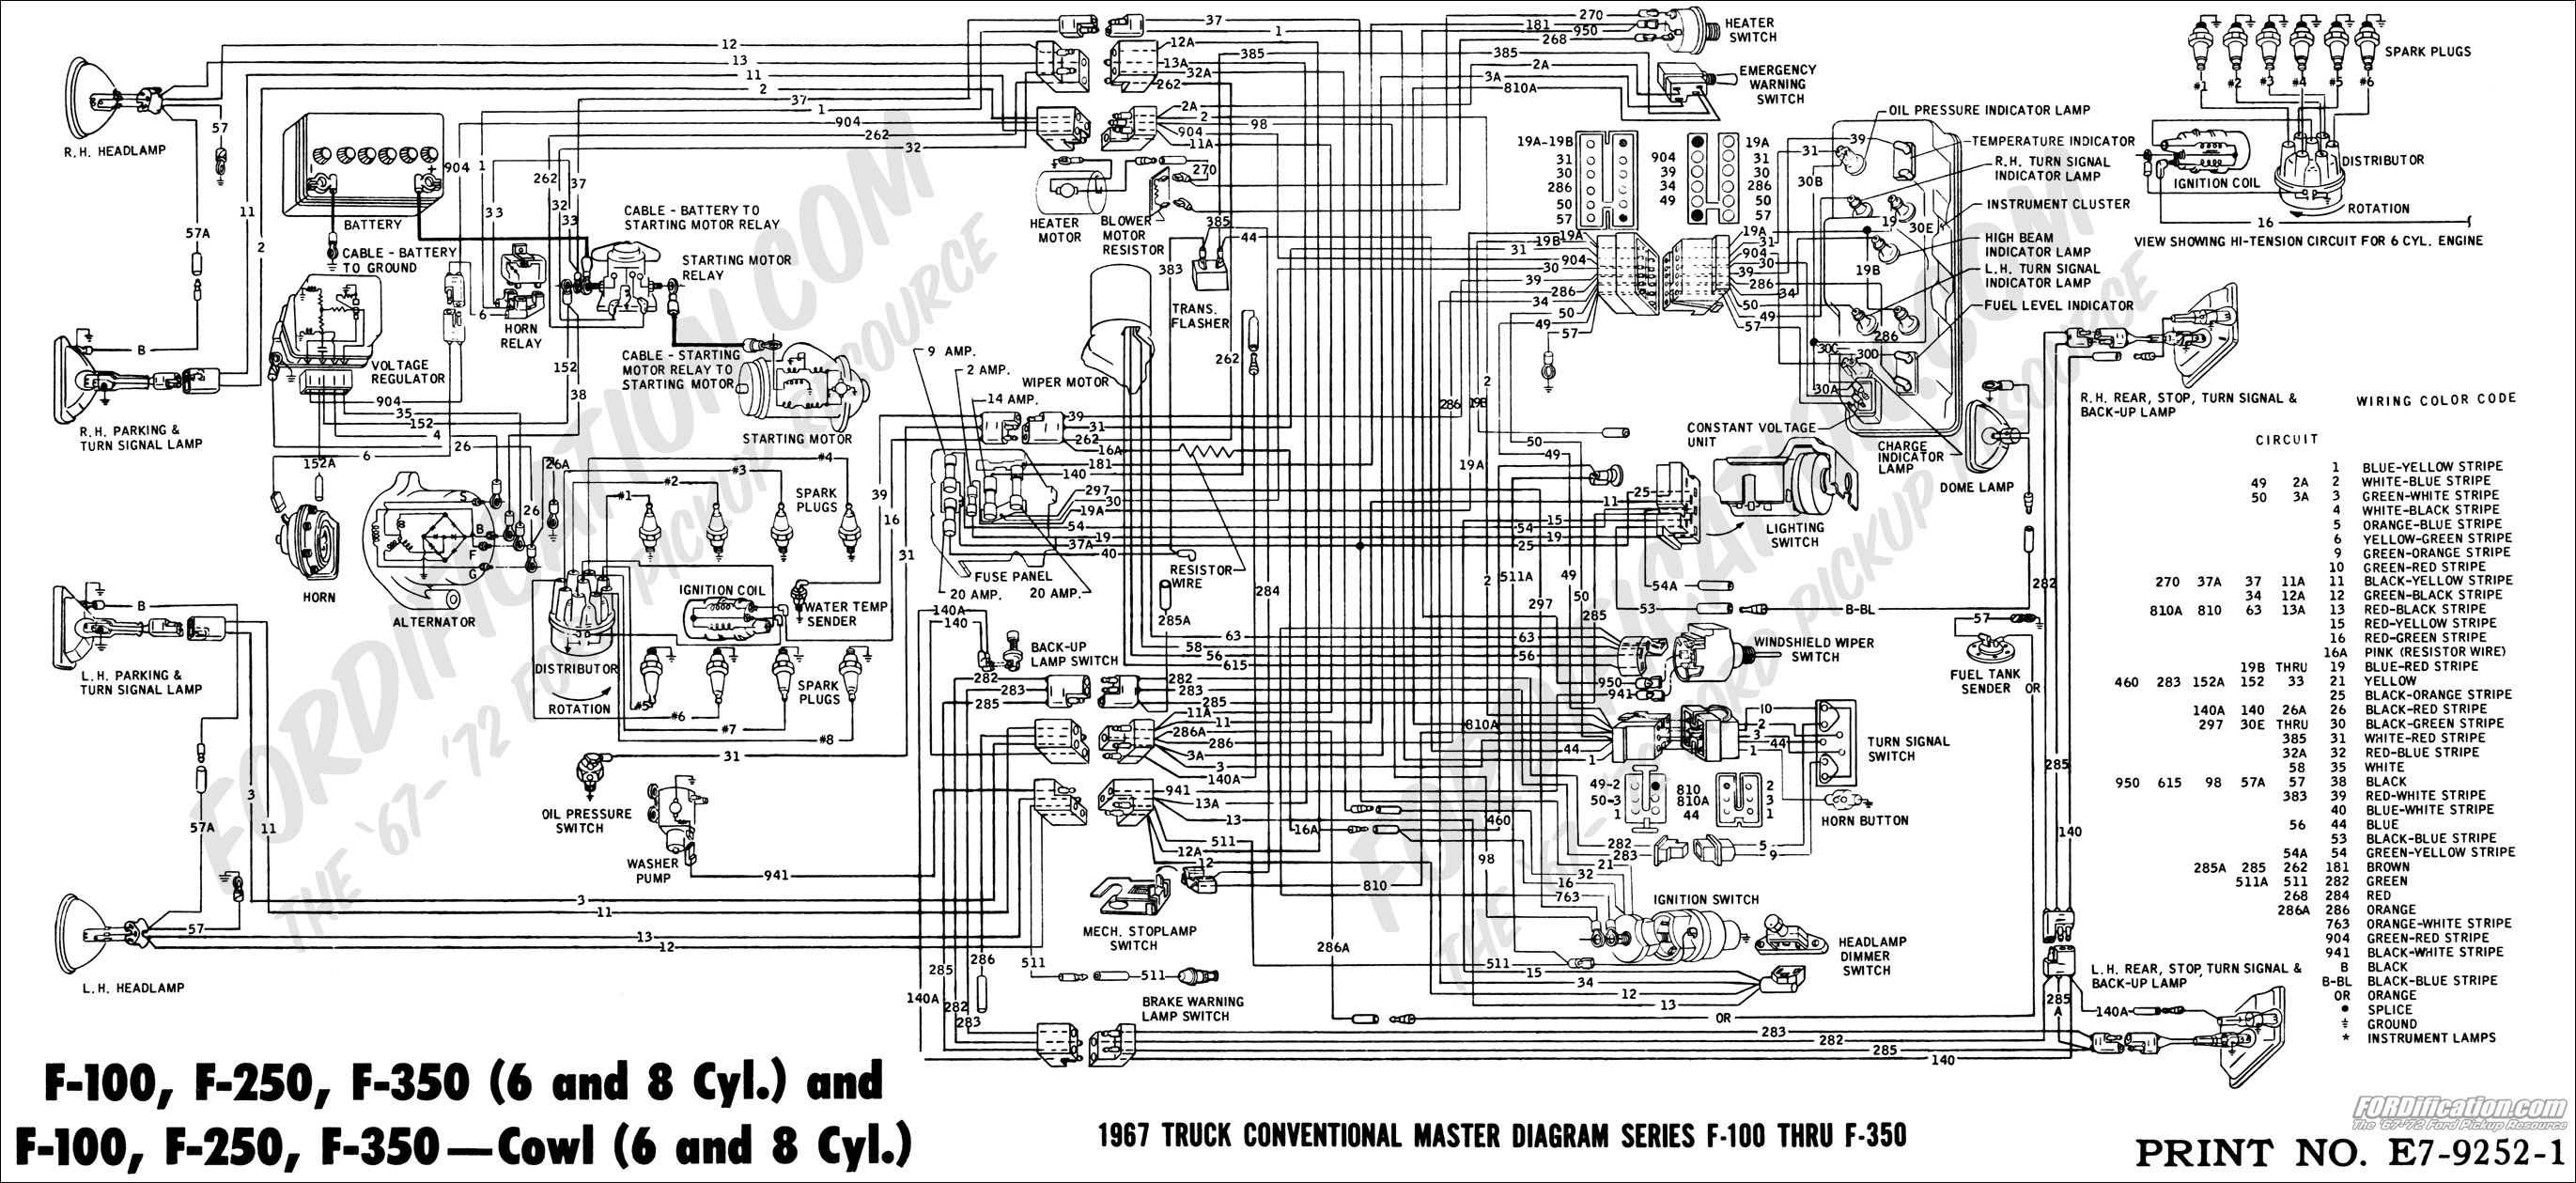 89 ford f150 wiring diagram detailed schematics diagram rh keyplusrubber  com 1998 Ford Explorer Fuel Pump Wiring 1989 ford f150 fuel pump wiring  diagram